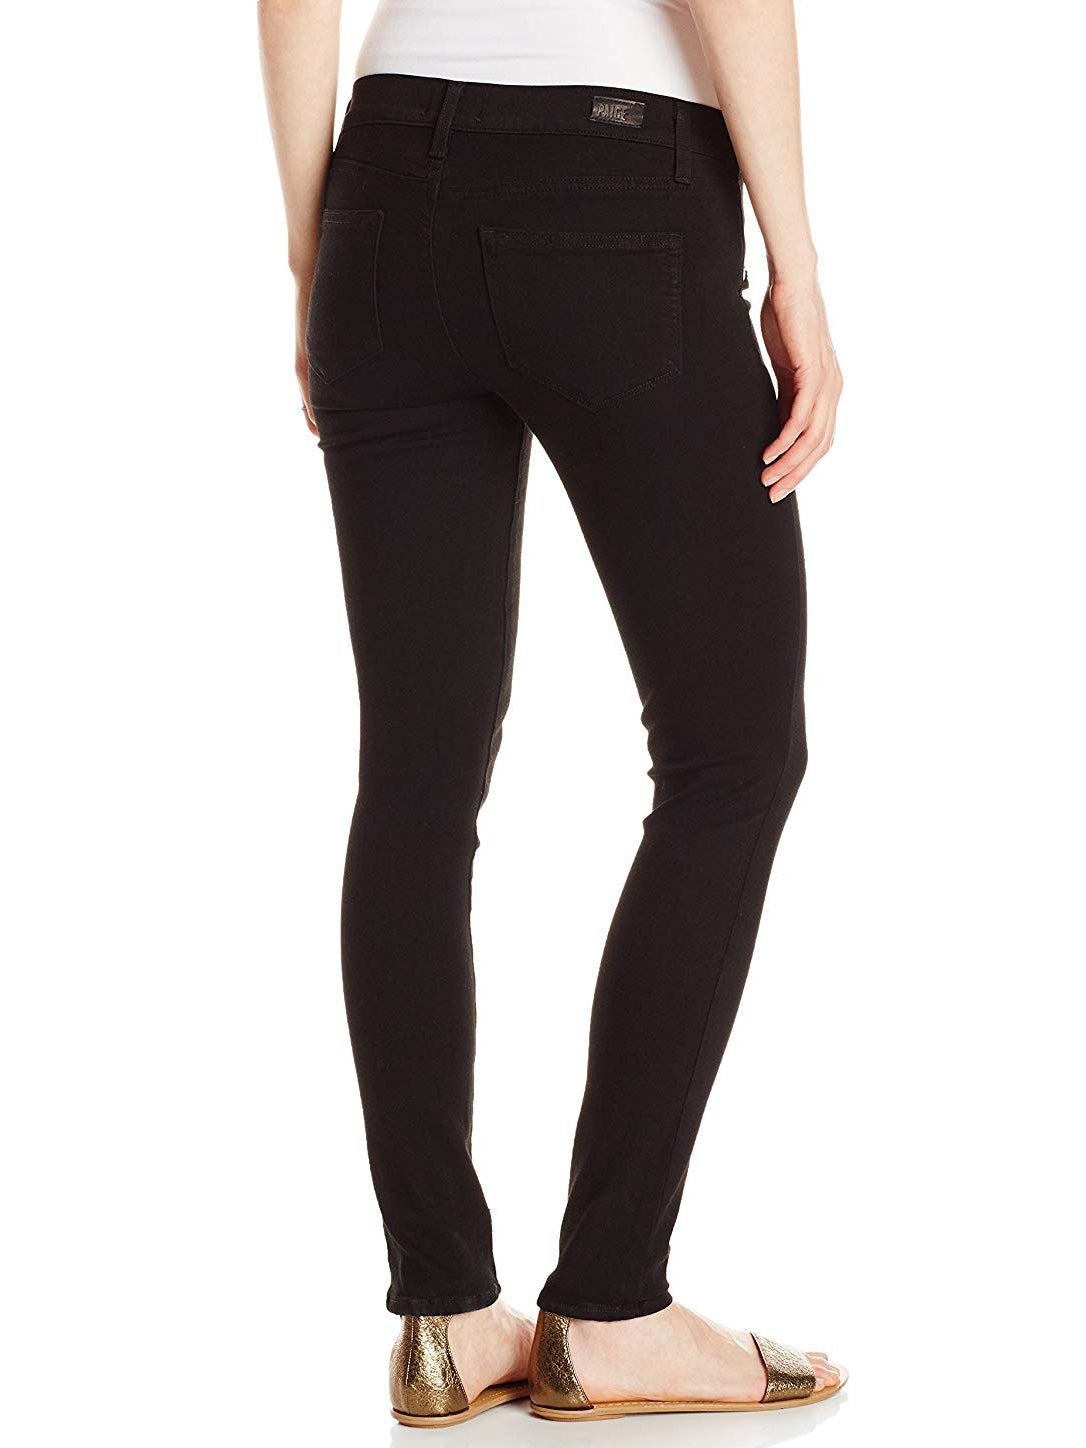 Paige Verdugo Skinny Maternity Jeans - Black Shadow | TILDEN